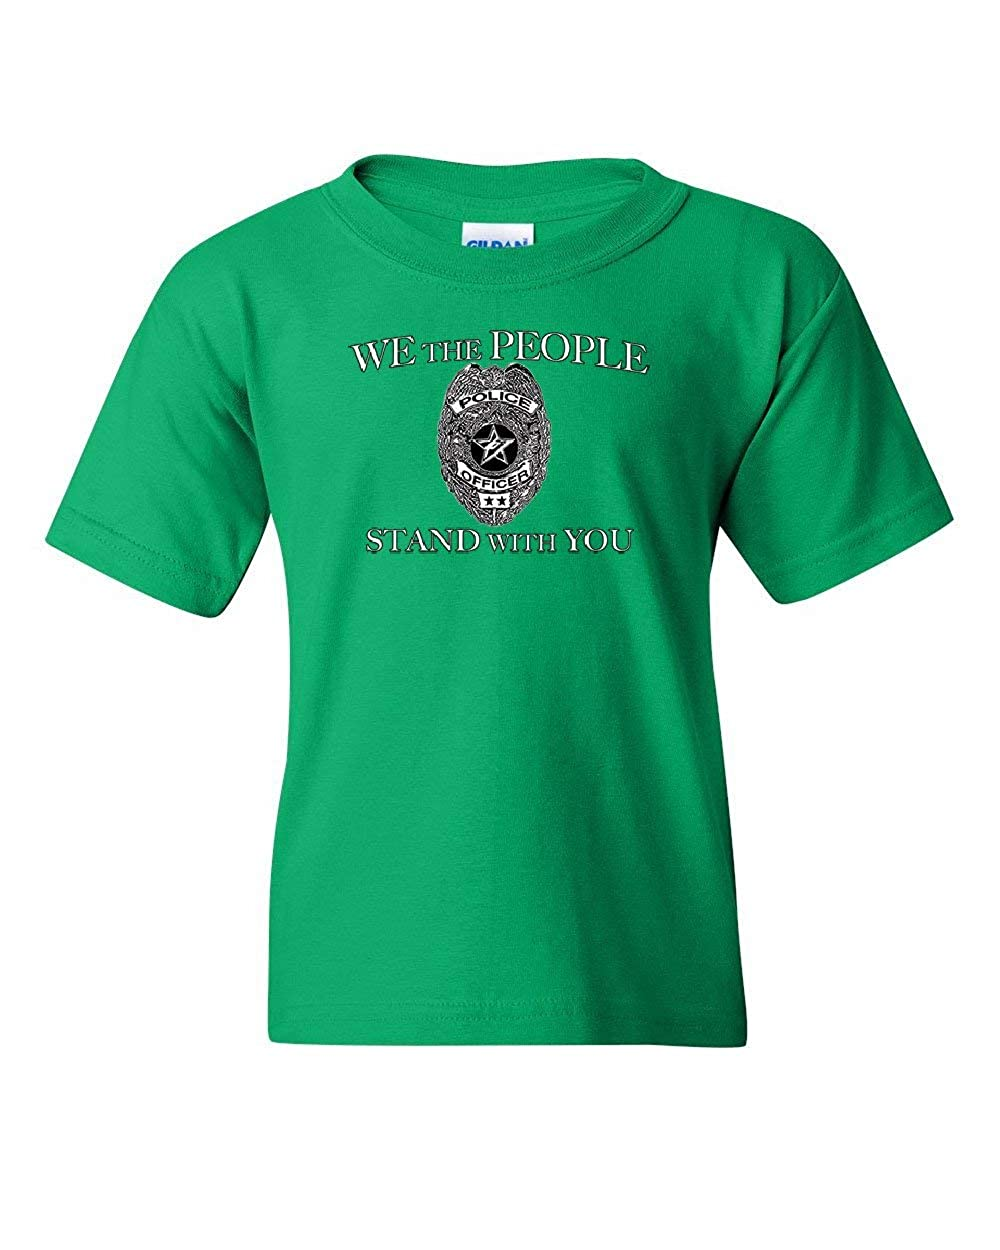 We The People Stand with You Youth T-Shirt Police Badge Cop Officer Kids Tee